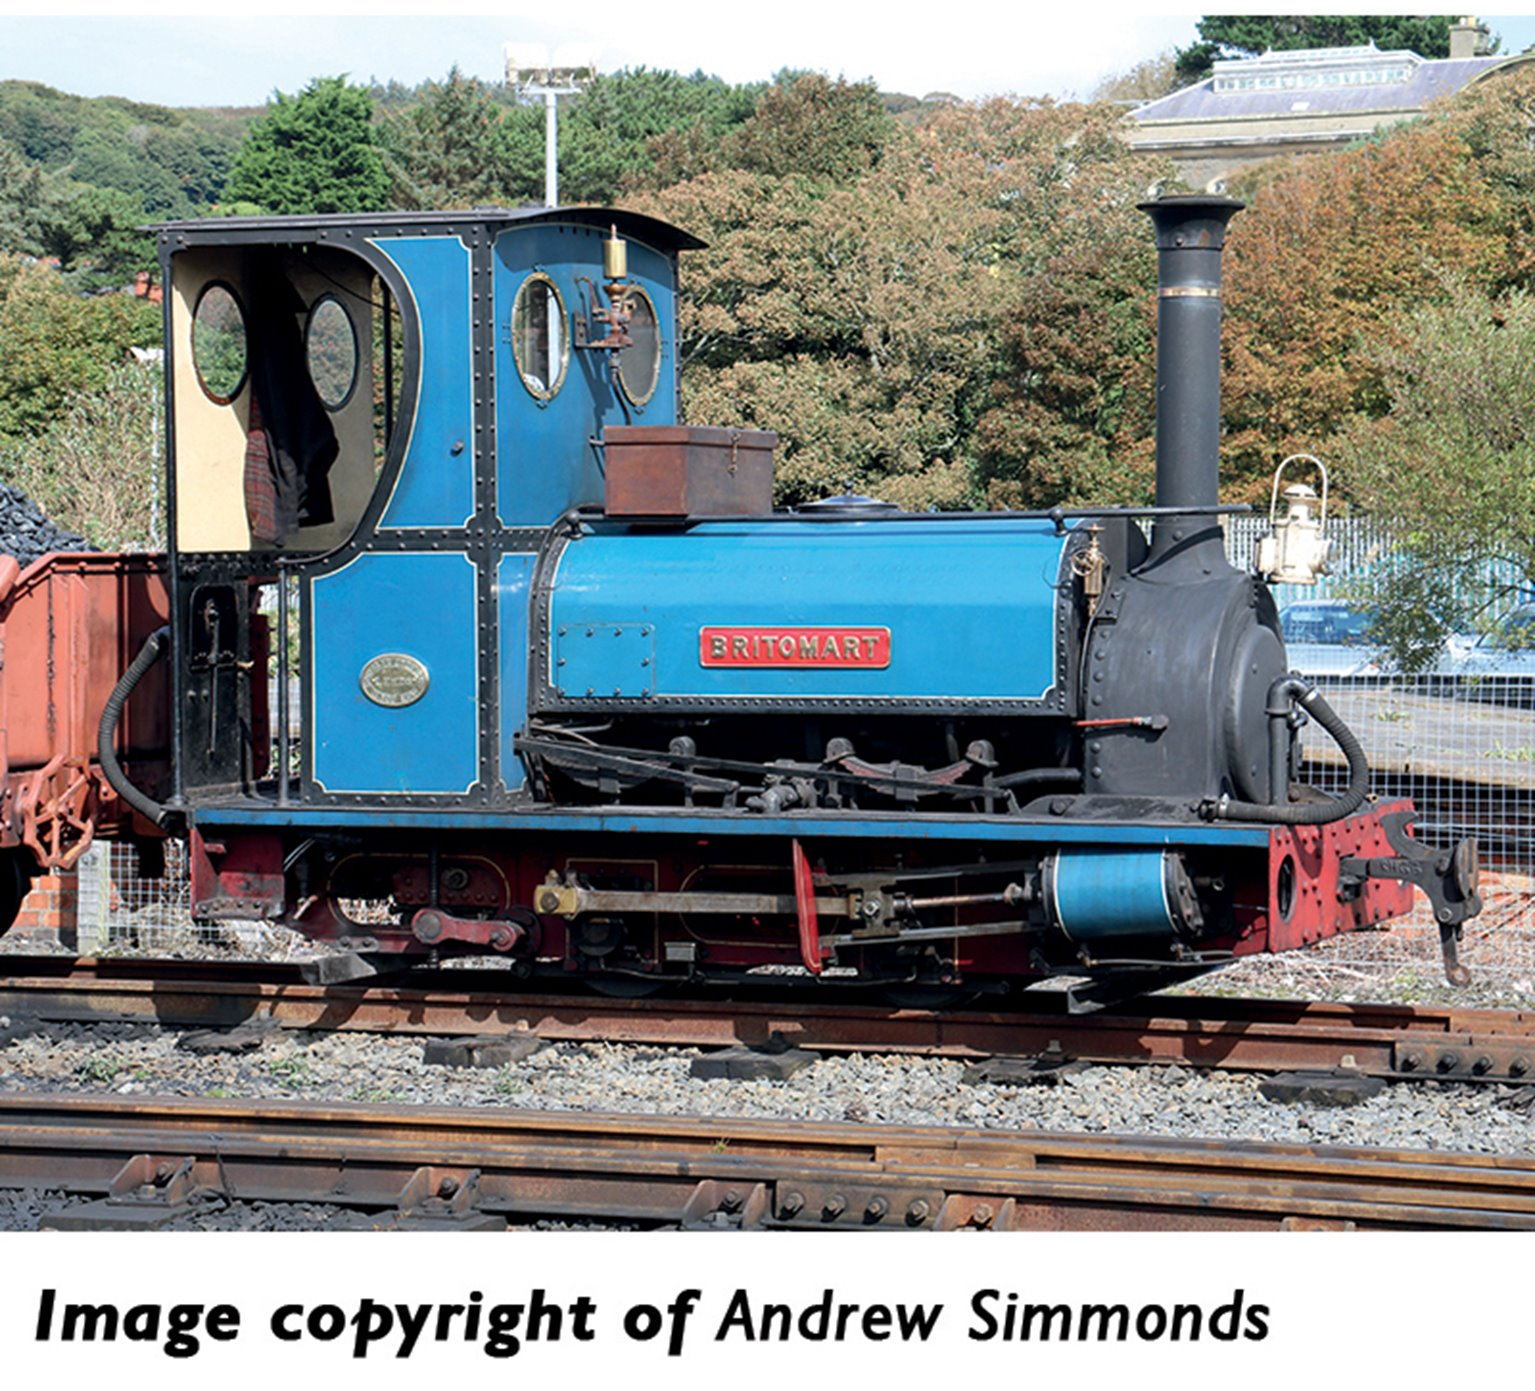 Quarry Hunslet 0-4-0 'Britomart' in Pen-yr-Orsedd Quarry Blue livery(Price is estimated - we will notify you if price rises and offer option to cancel)